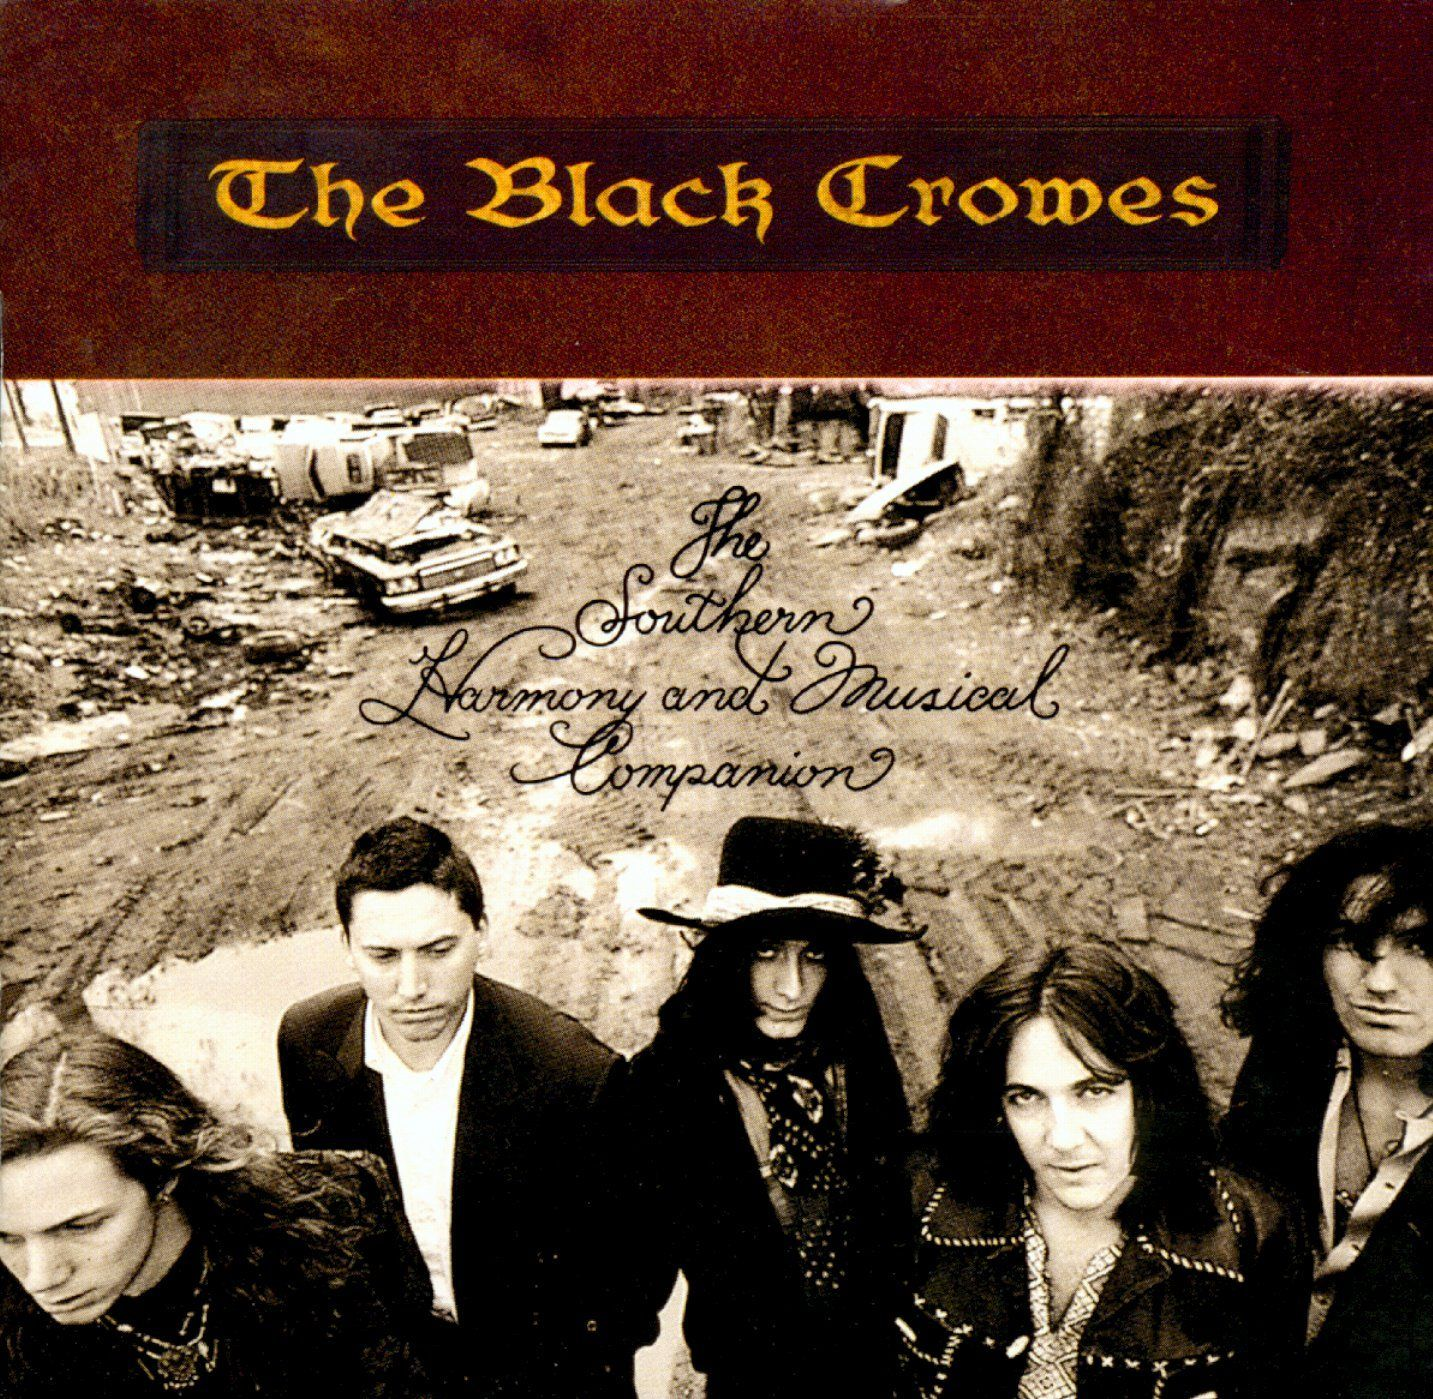 The Black Crowes second studio album features 4 chart-topping hits. Review via www.ContrastControl.net  Check out the site for great music reviews  #music #bands #interview #review #album #theblackcrowes #thesouthernharmonyandmusicalcompanion #rock #90smusic